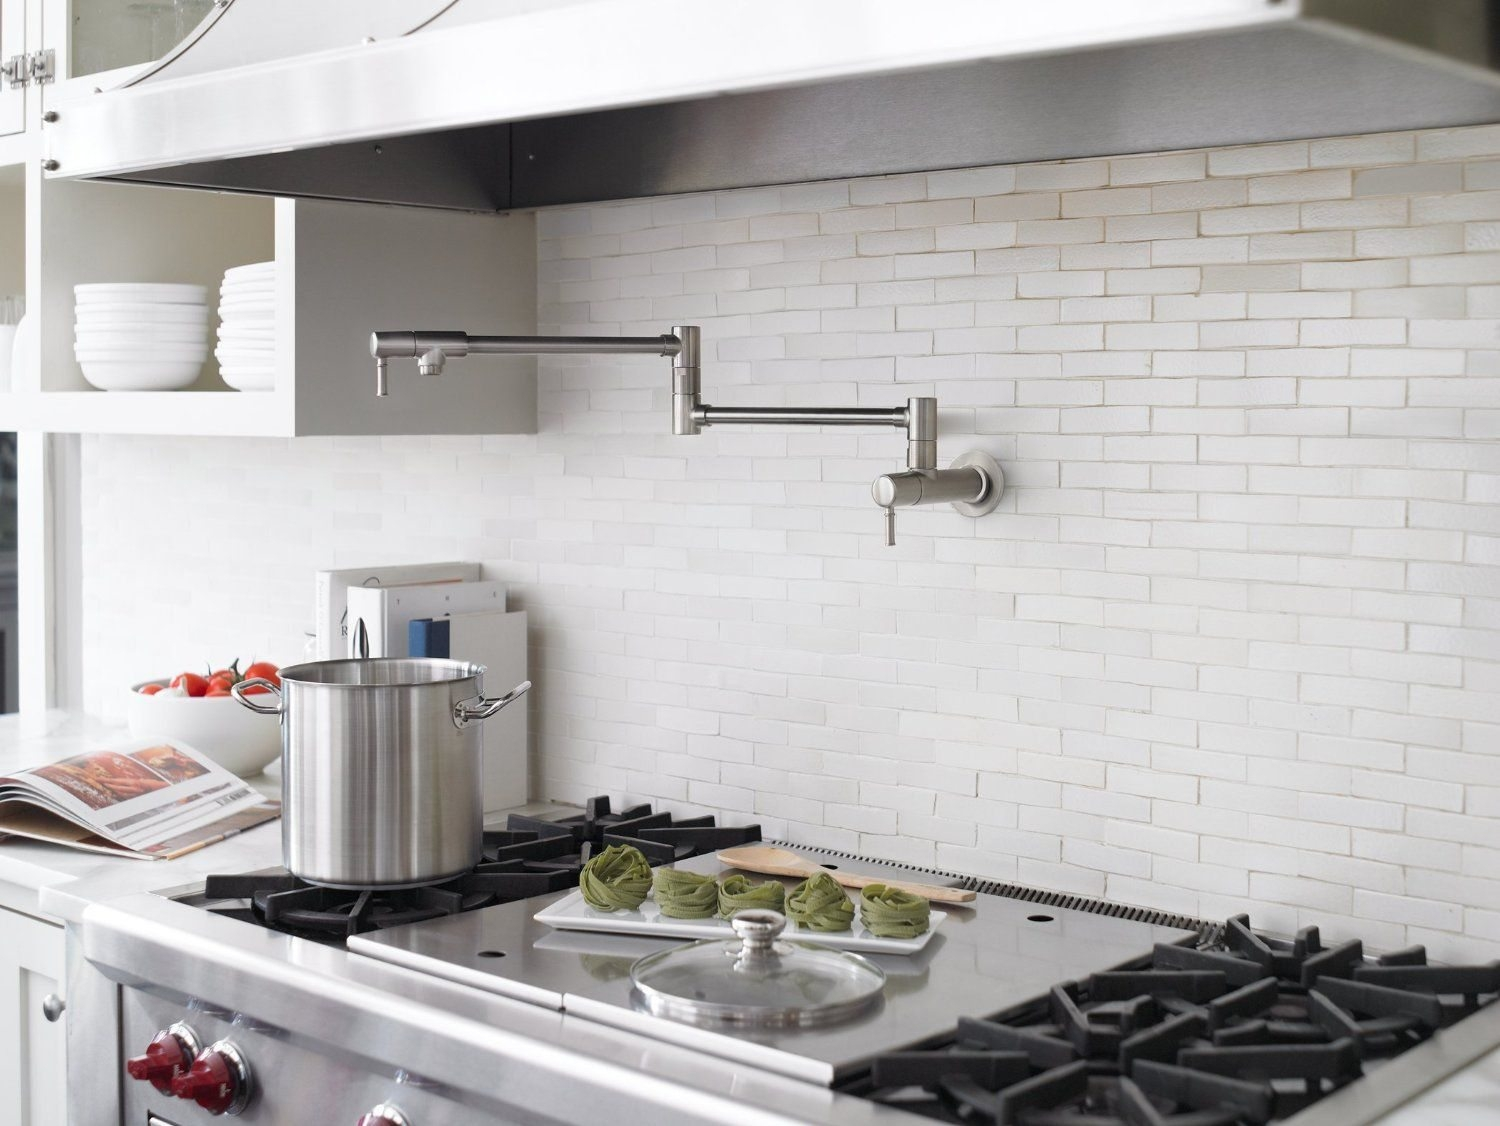 Pot Filler Faucet Above Stove